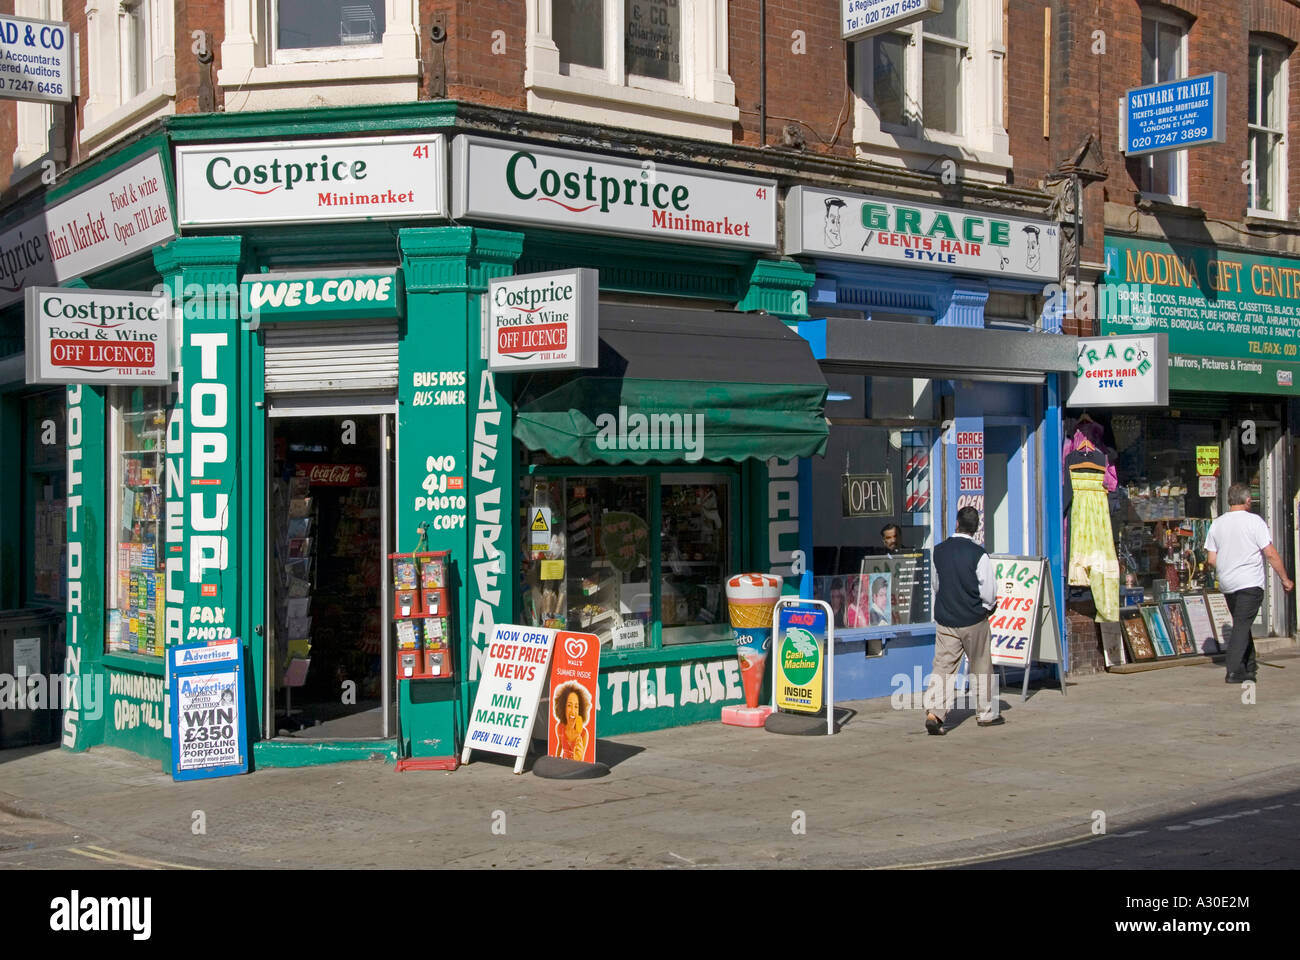 Hair Style Shop : Stock Photo - Costprice corner shop and gents hair style shop in Brick ...